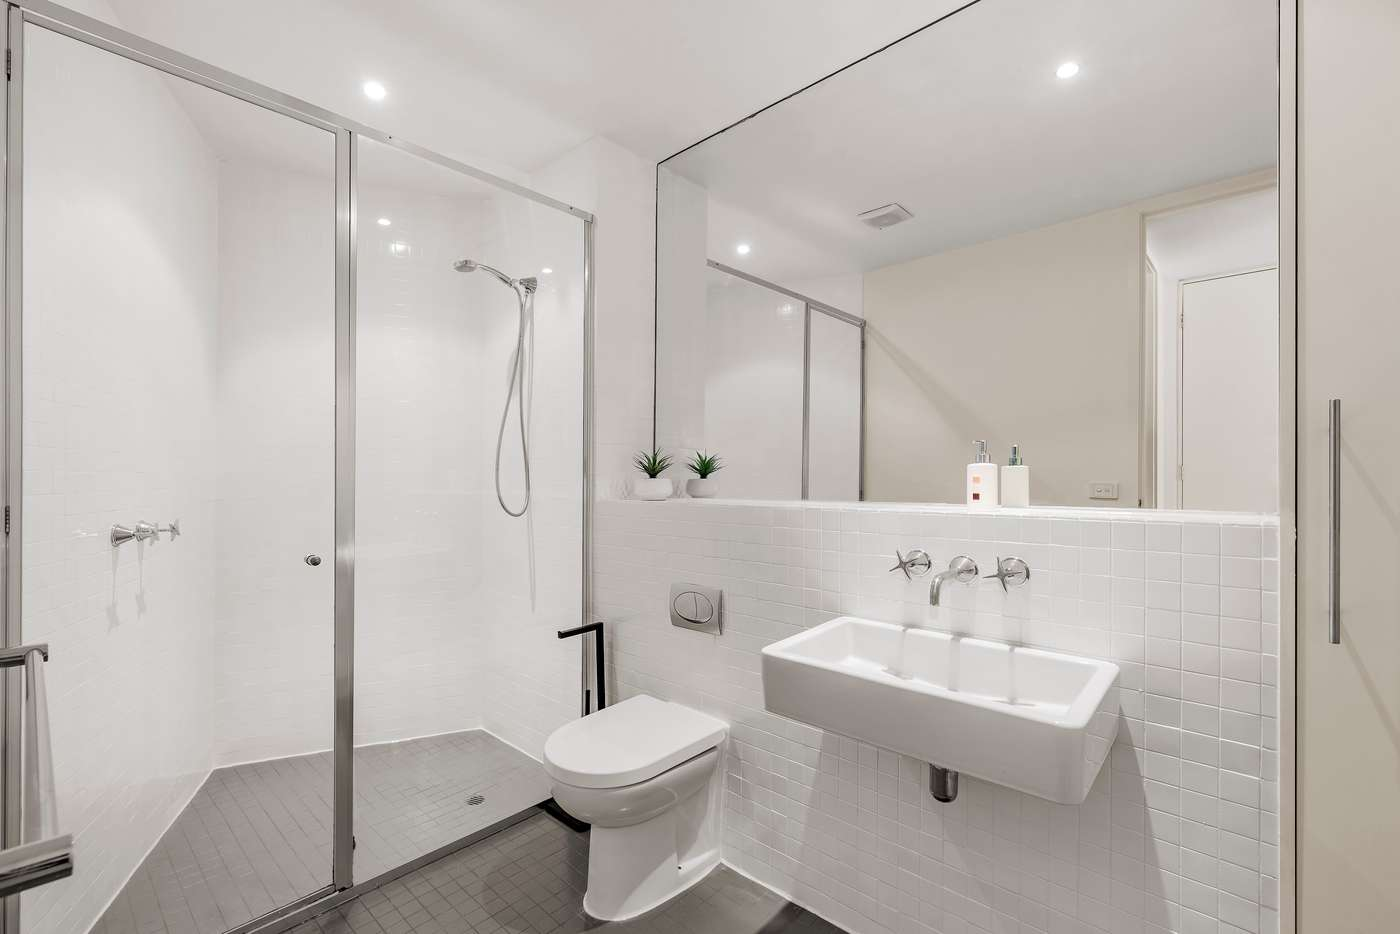 Sixth view of Homely apartment listing, 1/19 Boundary Street, Port Melbourne VIC 3207